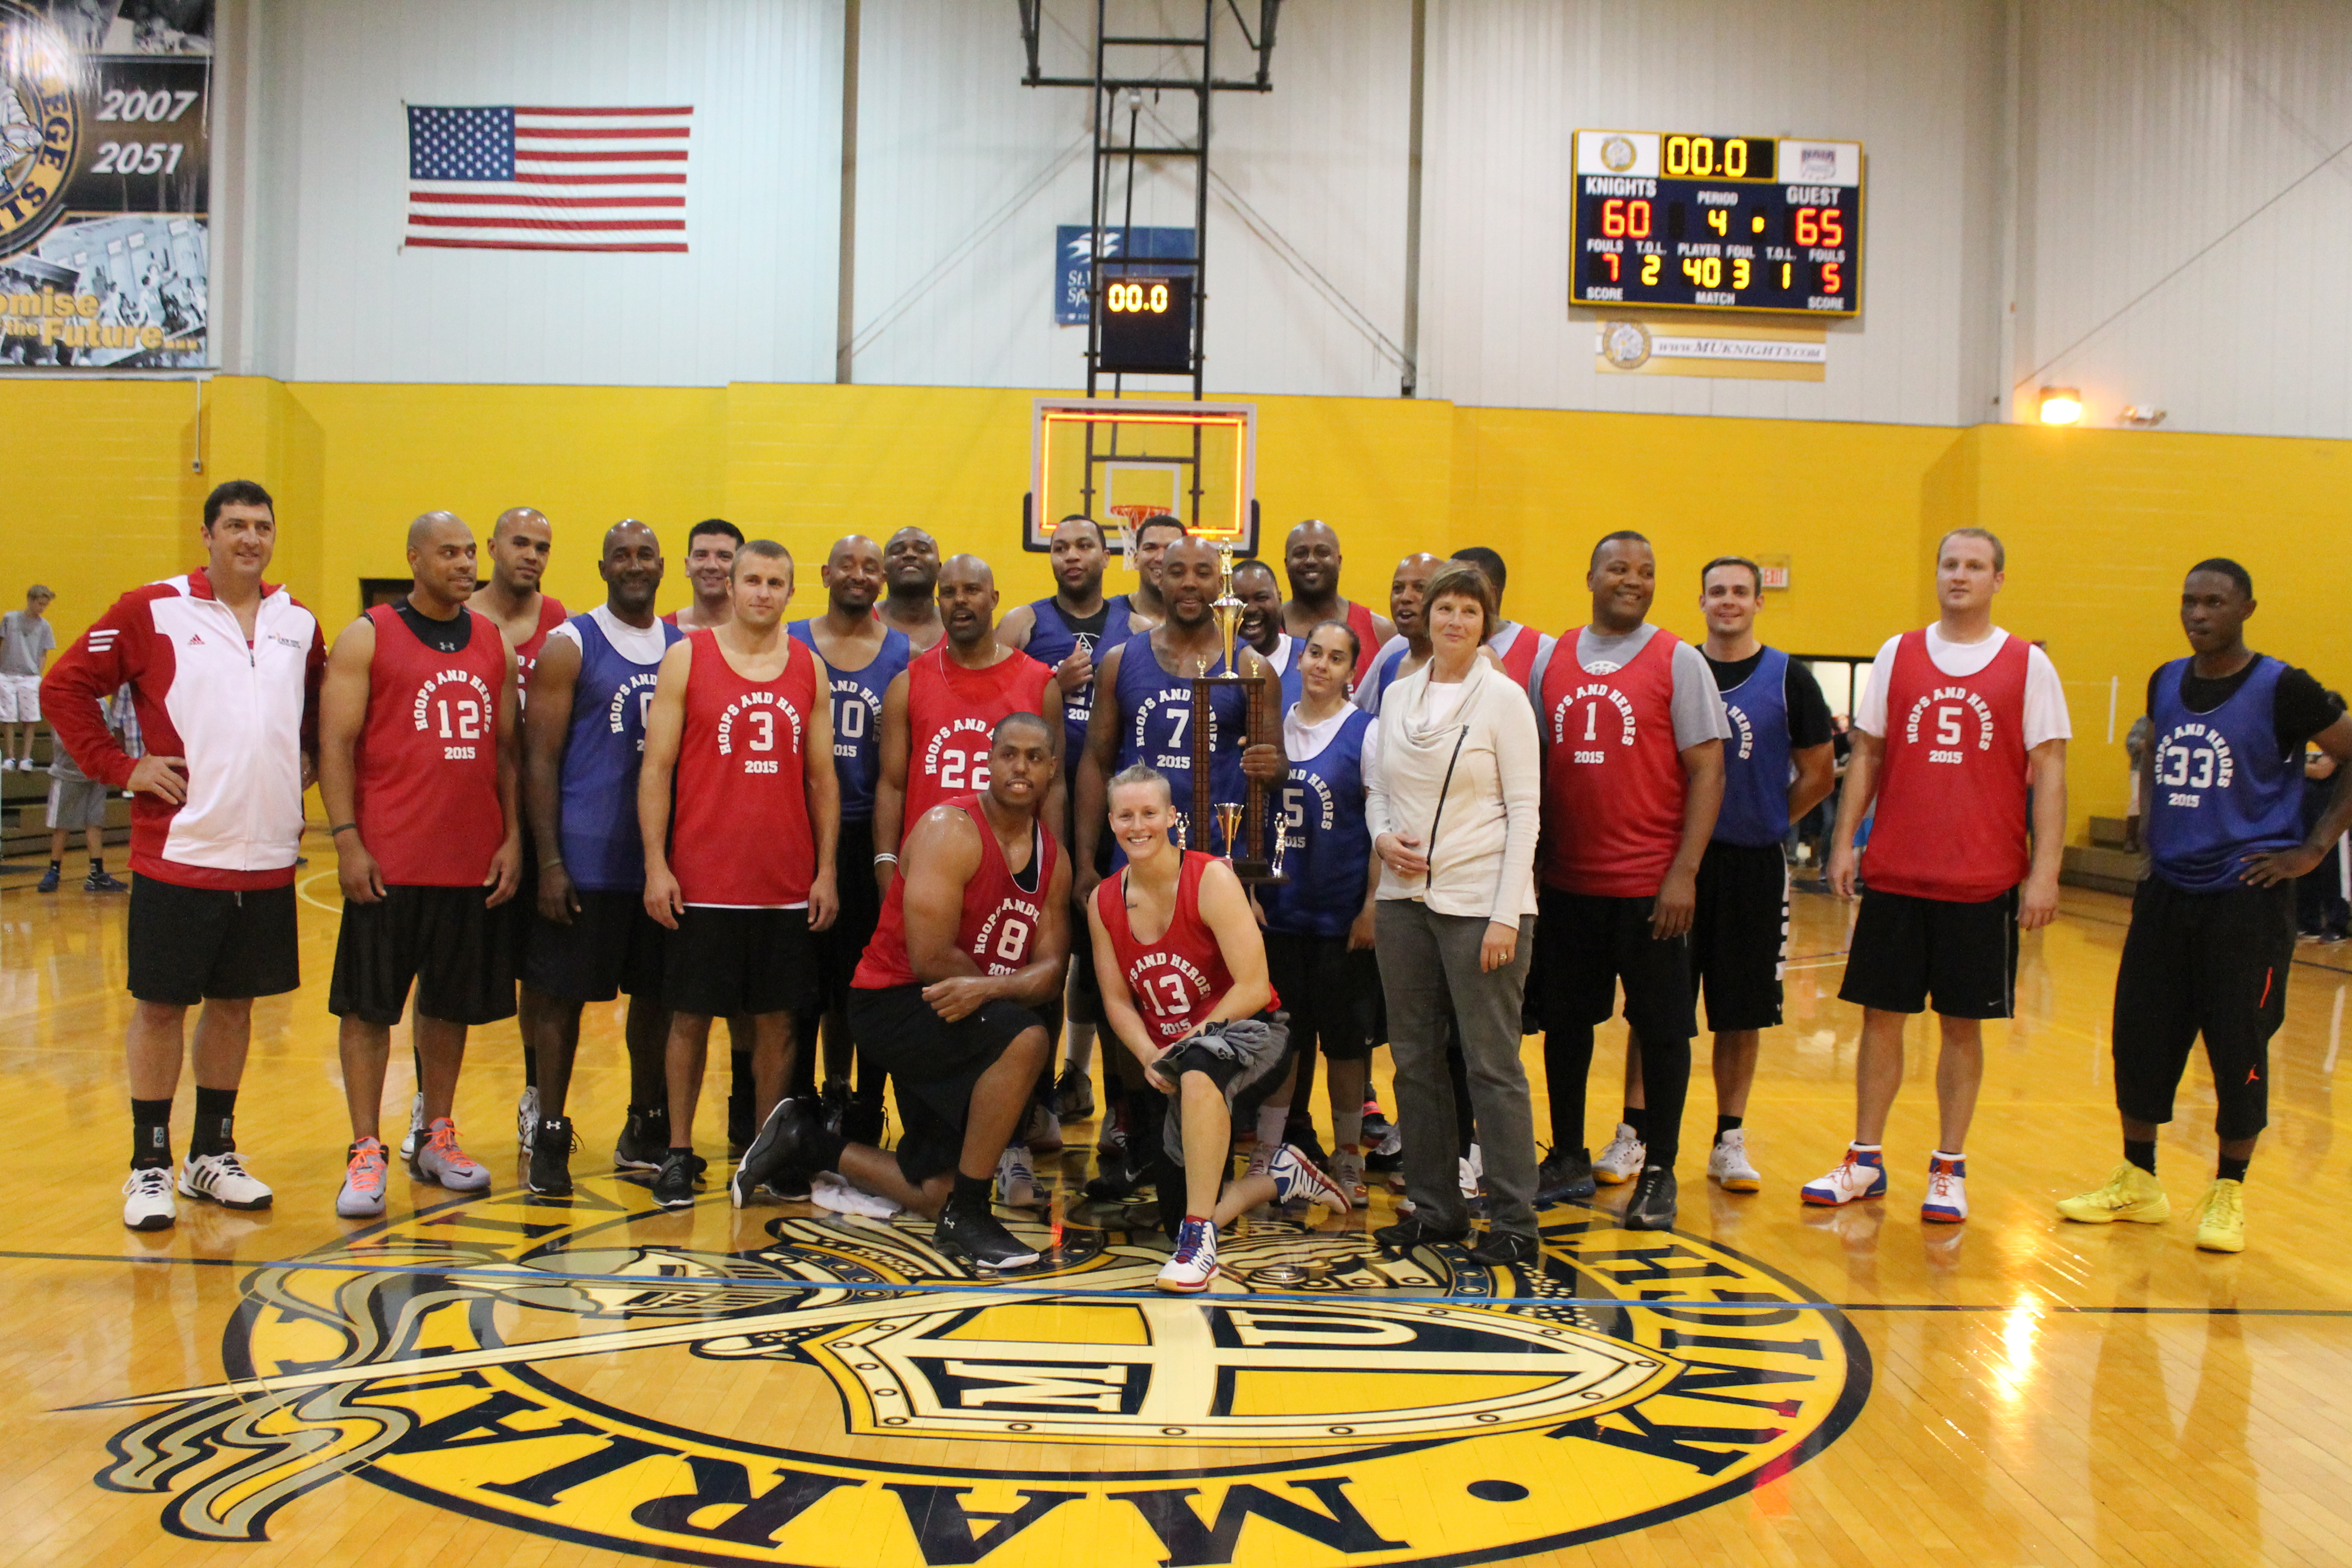 Hoops for hope celebrity charity basketball game